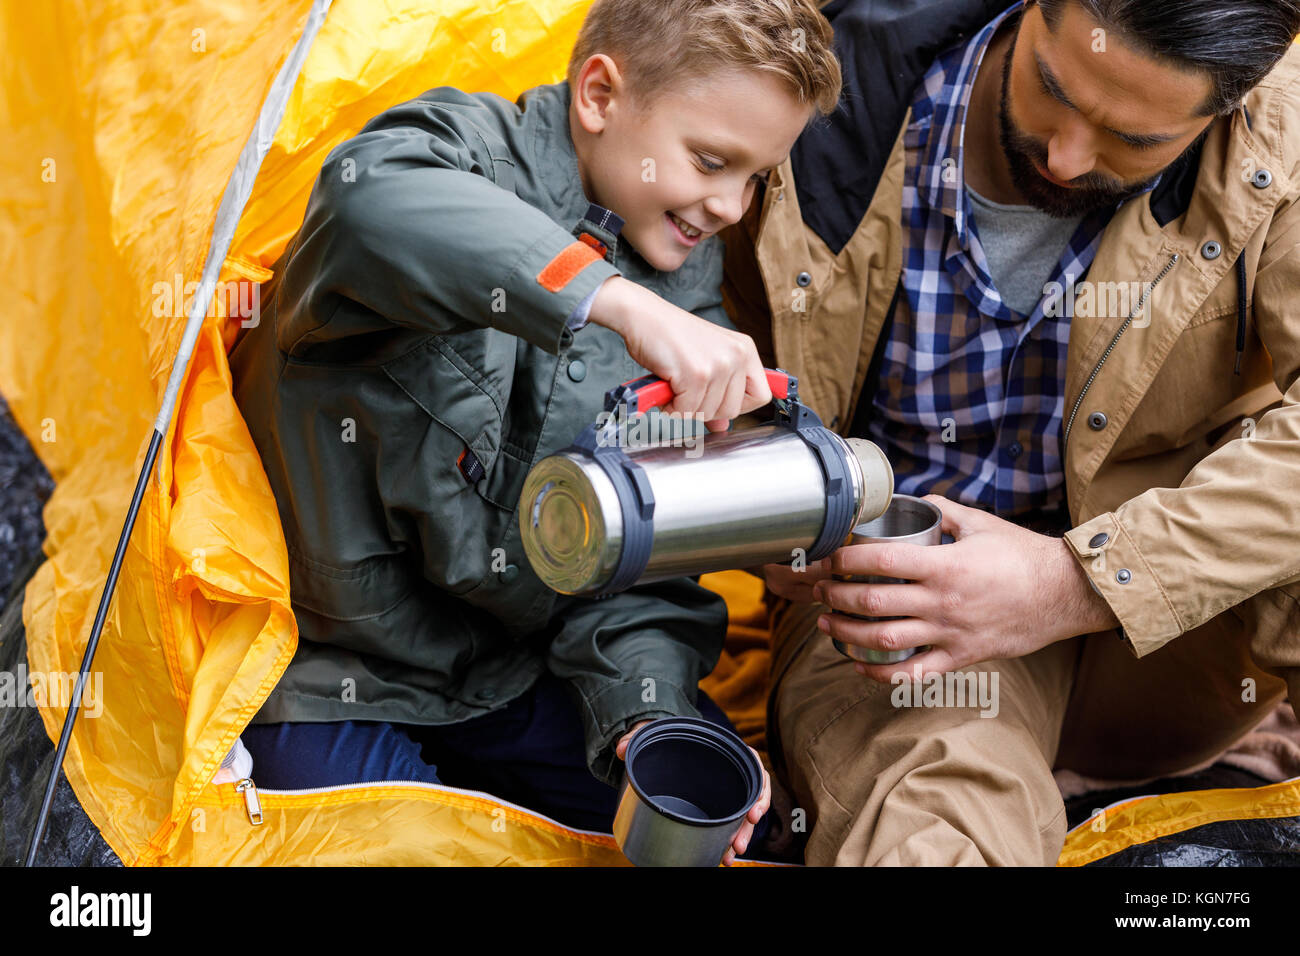 Fils avec thermos dans camping Photo Stock